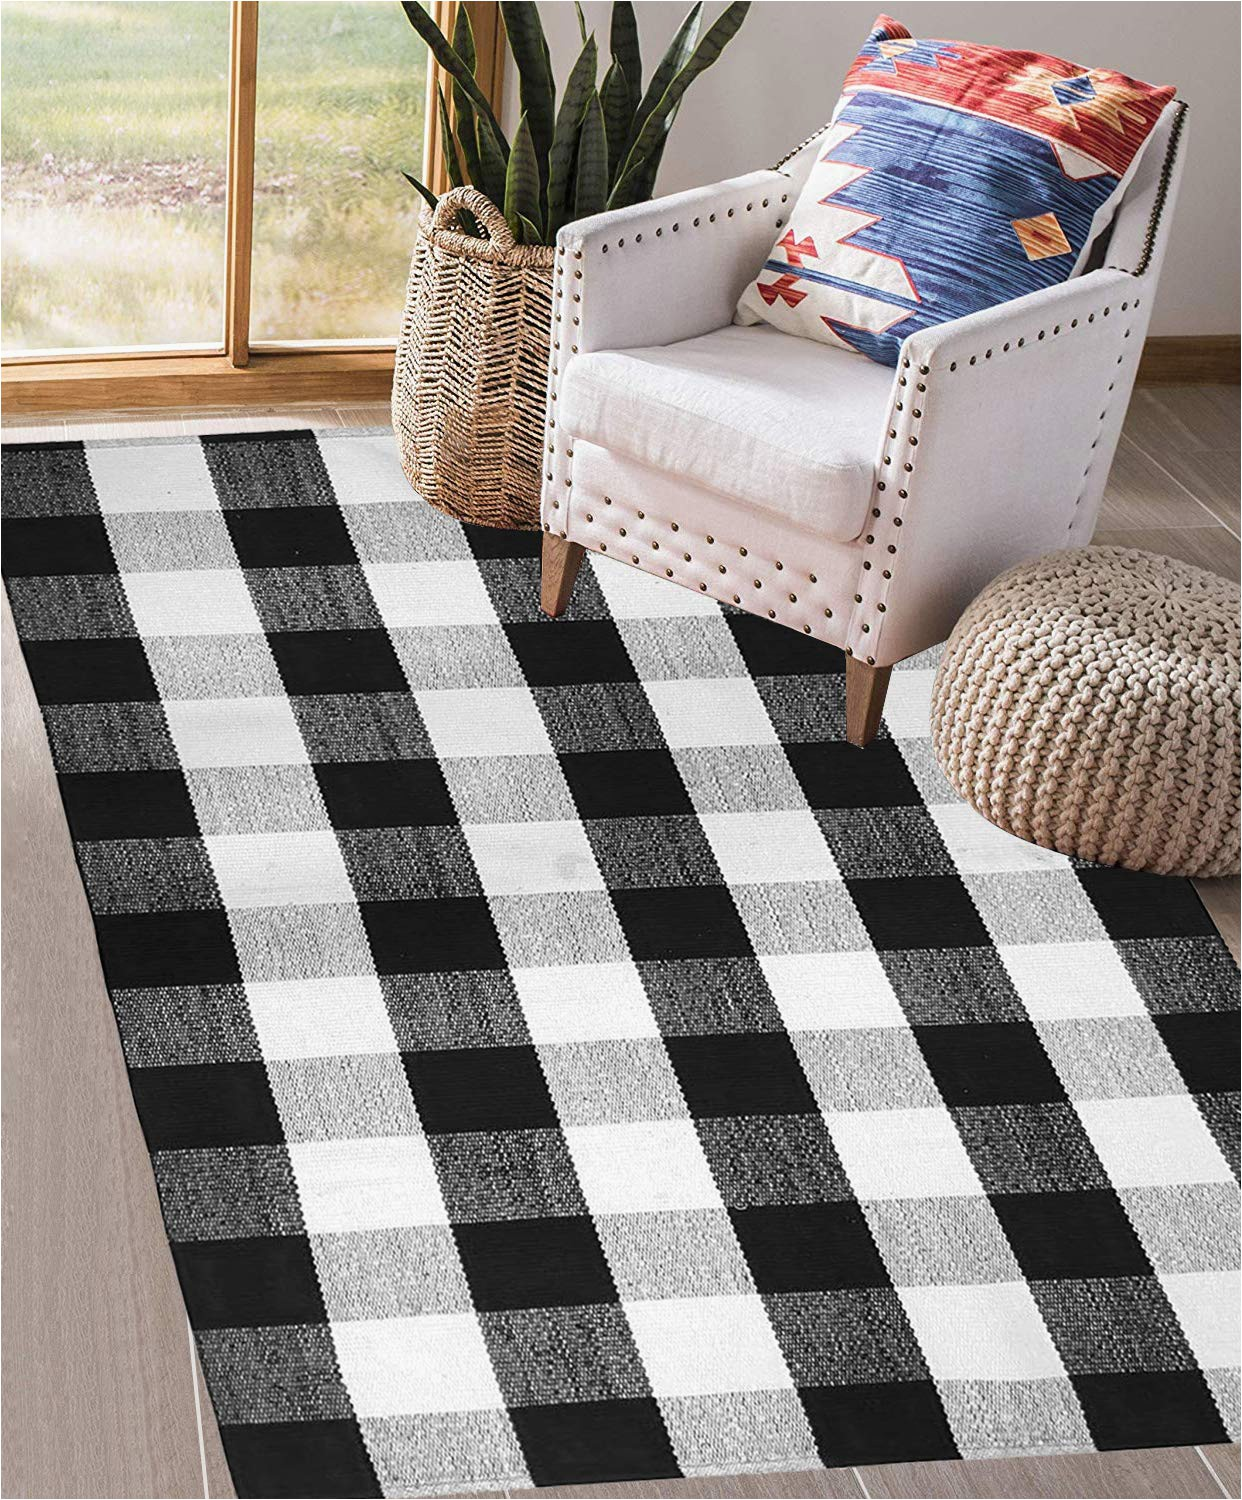 earthall cotton buffalo plaid check rug 3 x 5 black and white area rug hand woven kitchen frontdoor living room laundry room bathroom bedroom washable retro lattice checkered carpet 35 4 x 59